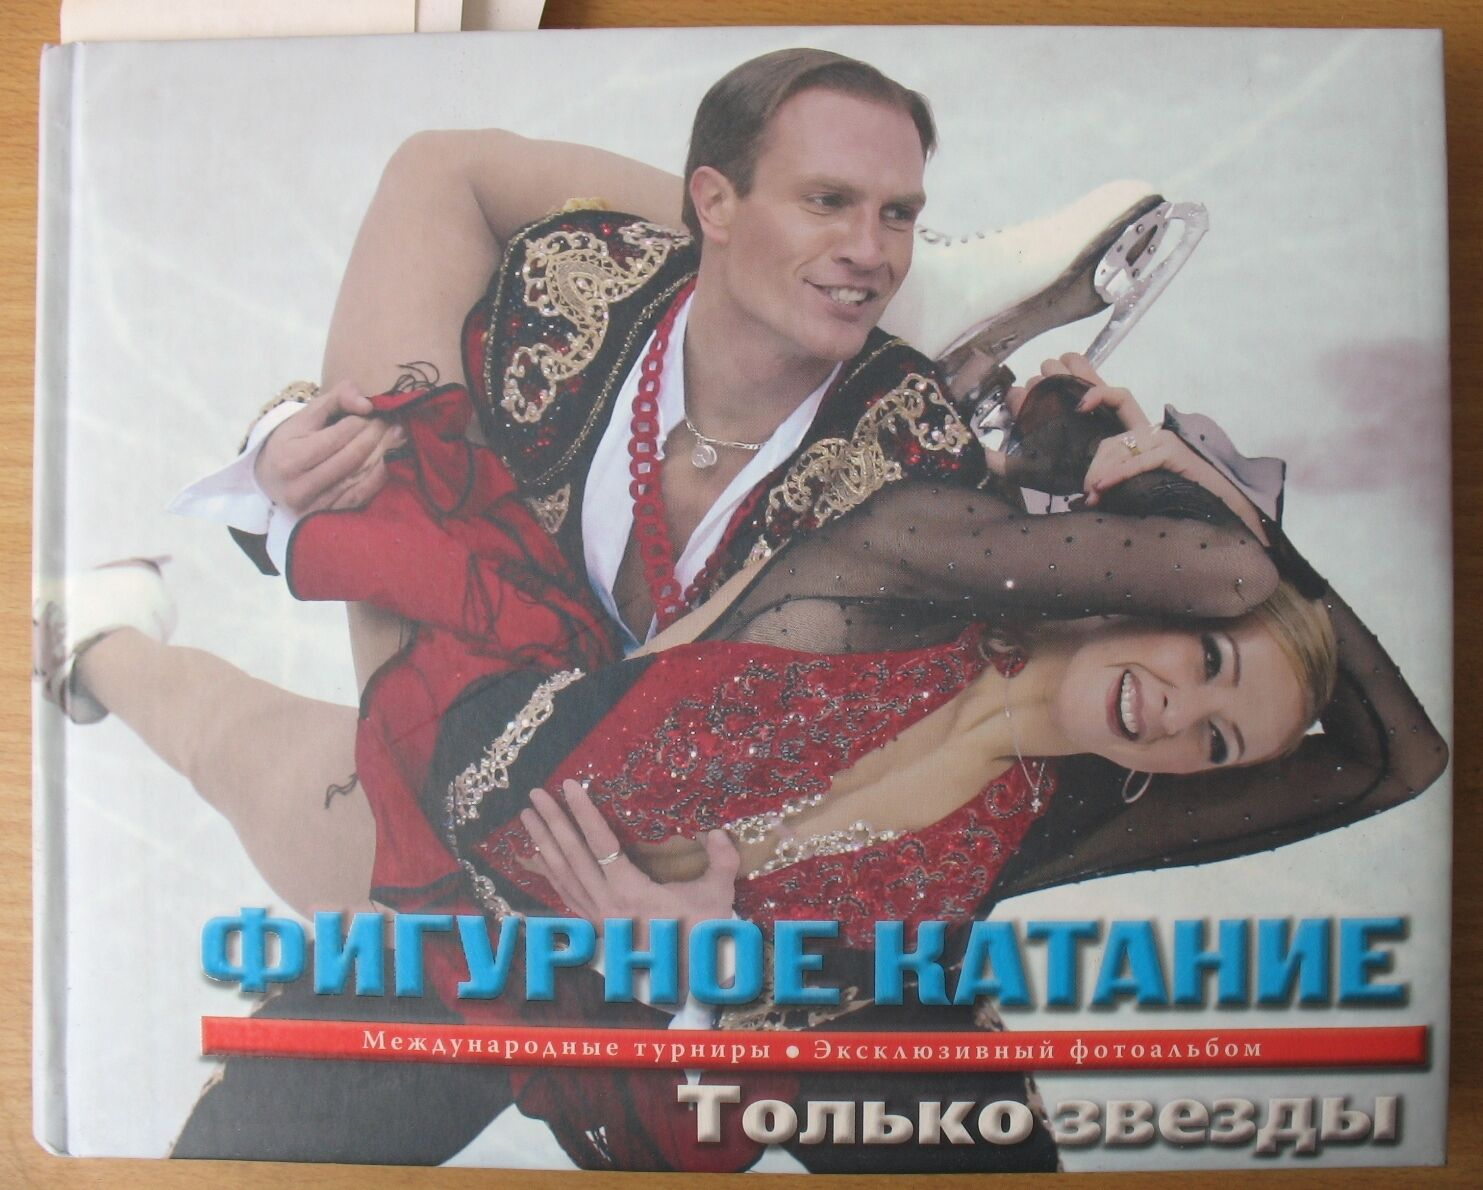 Book Figure Skating Lessons Russian Sport Ice Winter Photo Album Only Star Big